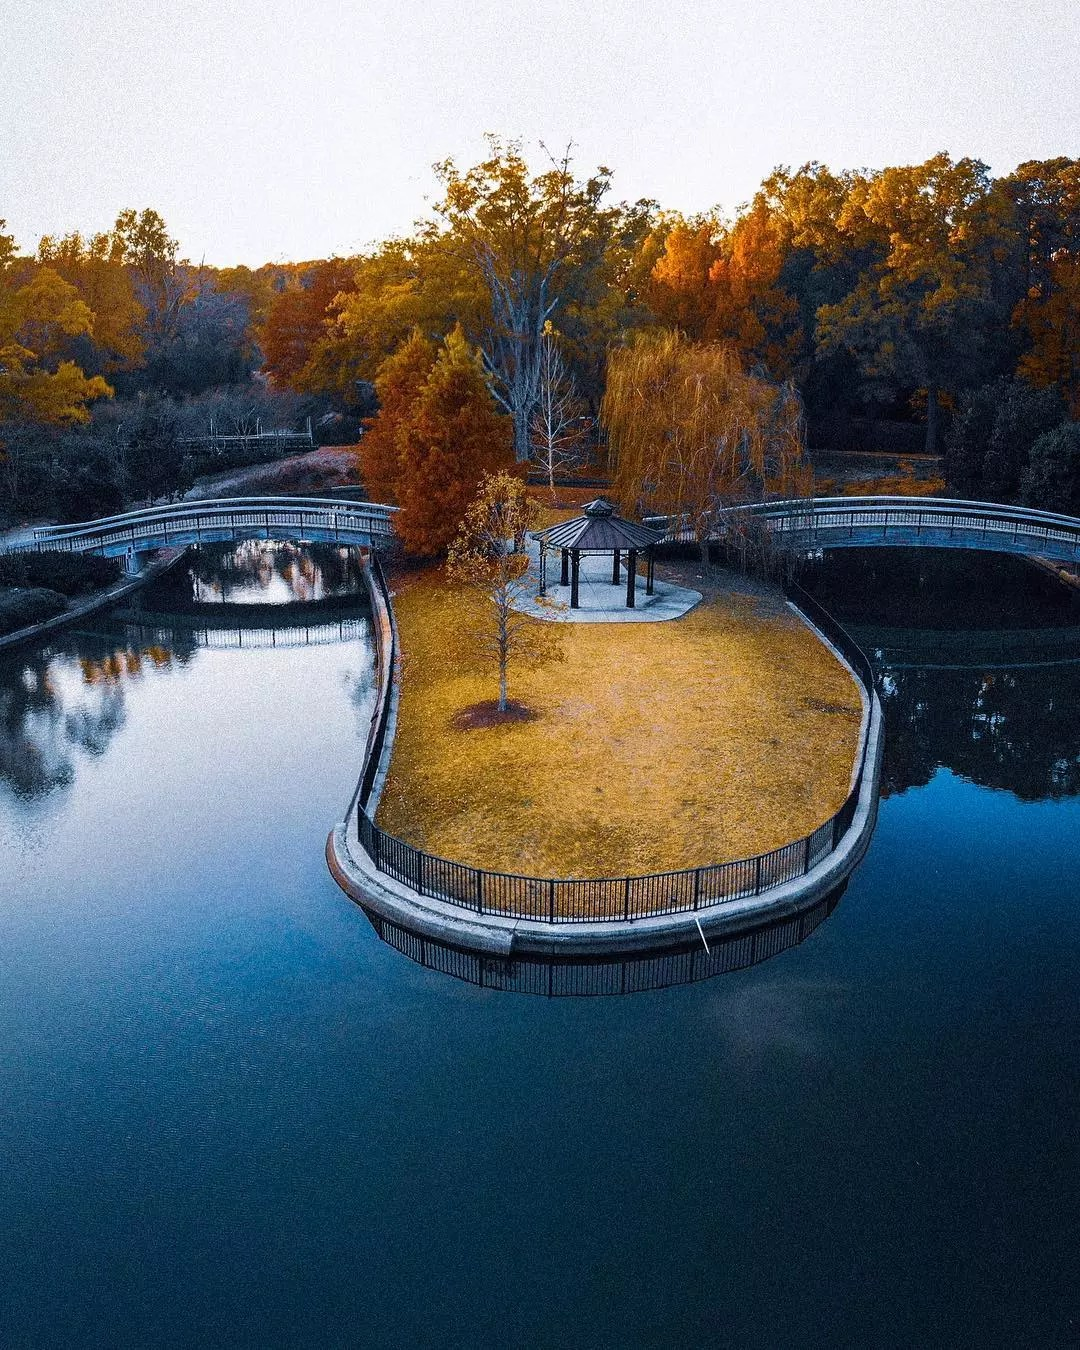 Overhead view of pond and greenspace with bridges and shelter at Pullen. Park Photo by Instagram user @rawsta_photo